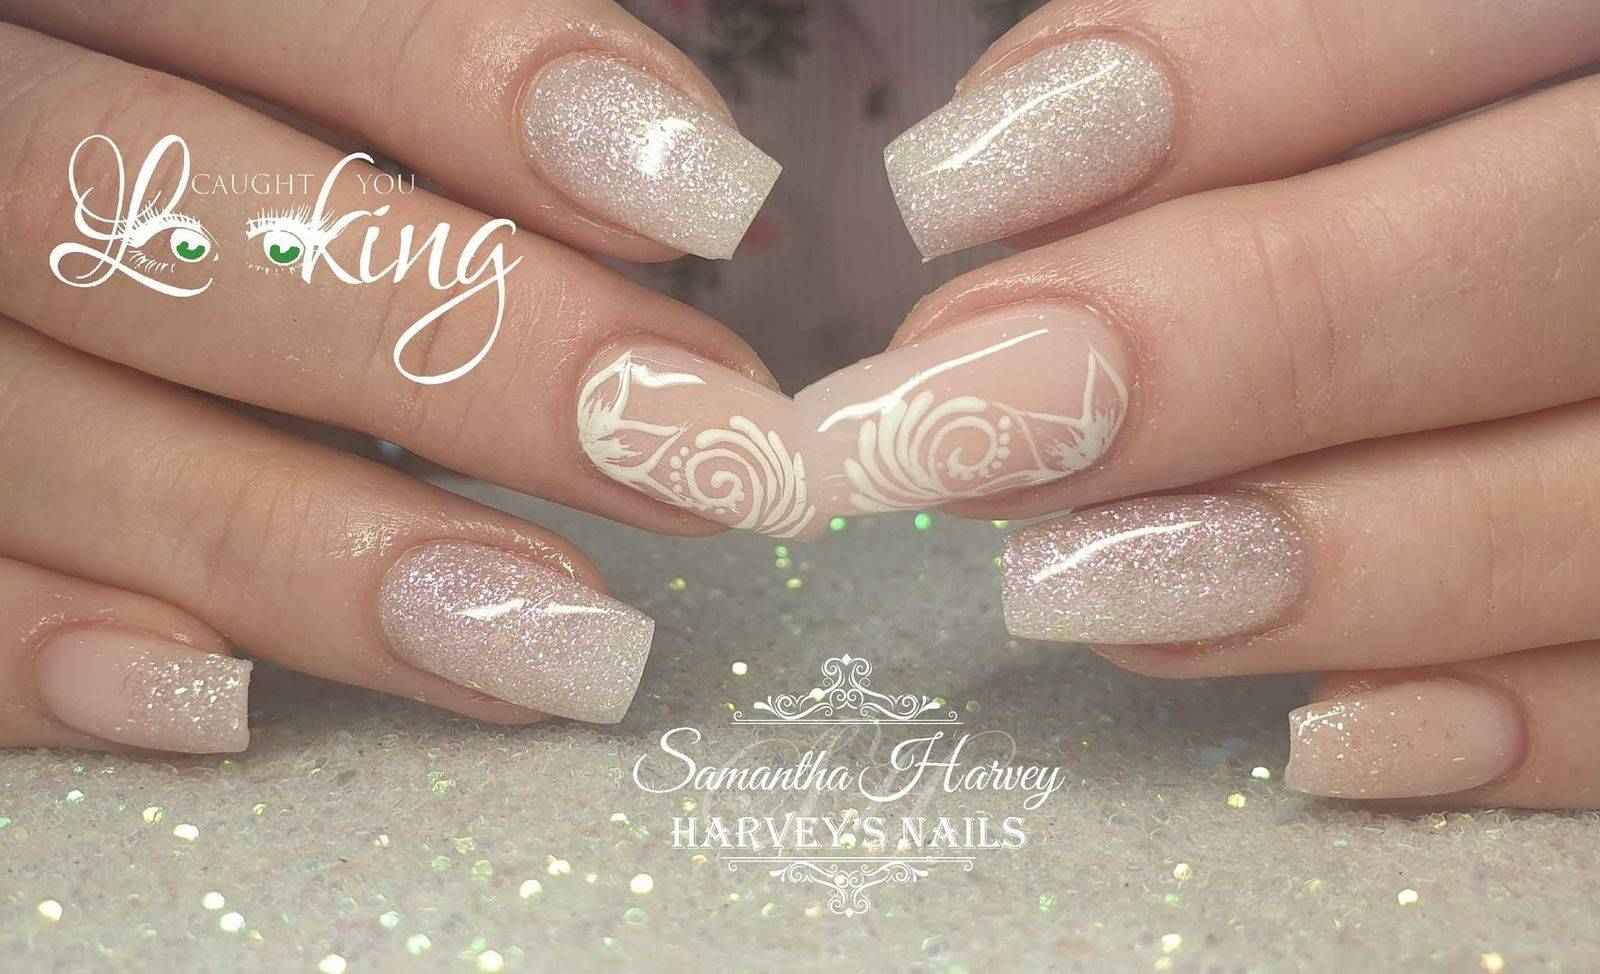 Elegant Acrylic design with hand painted swirls